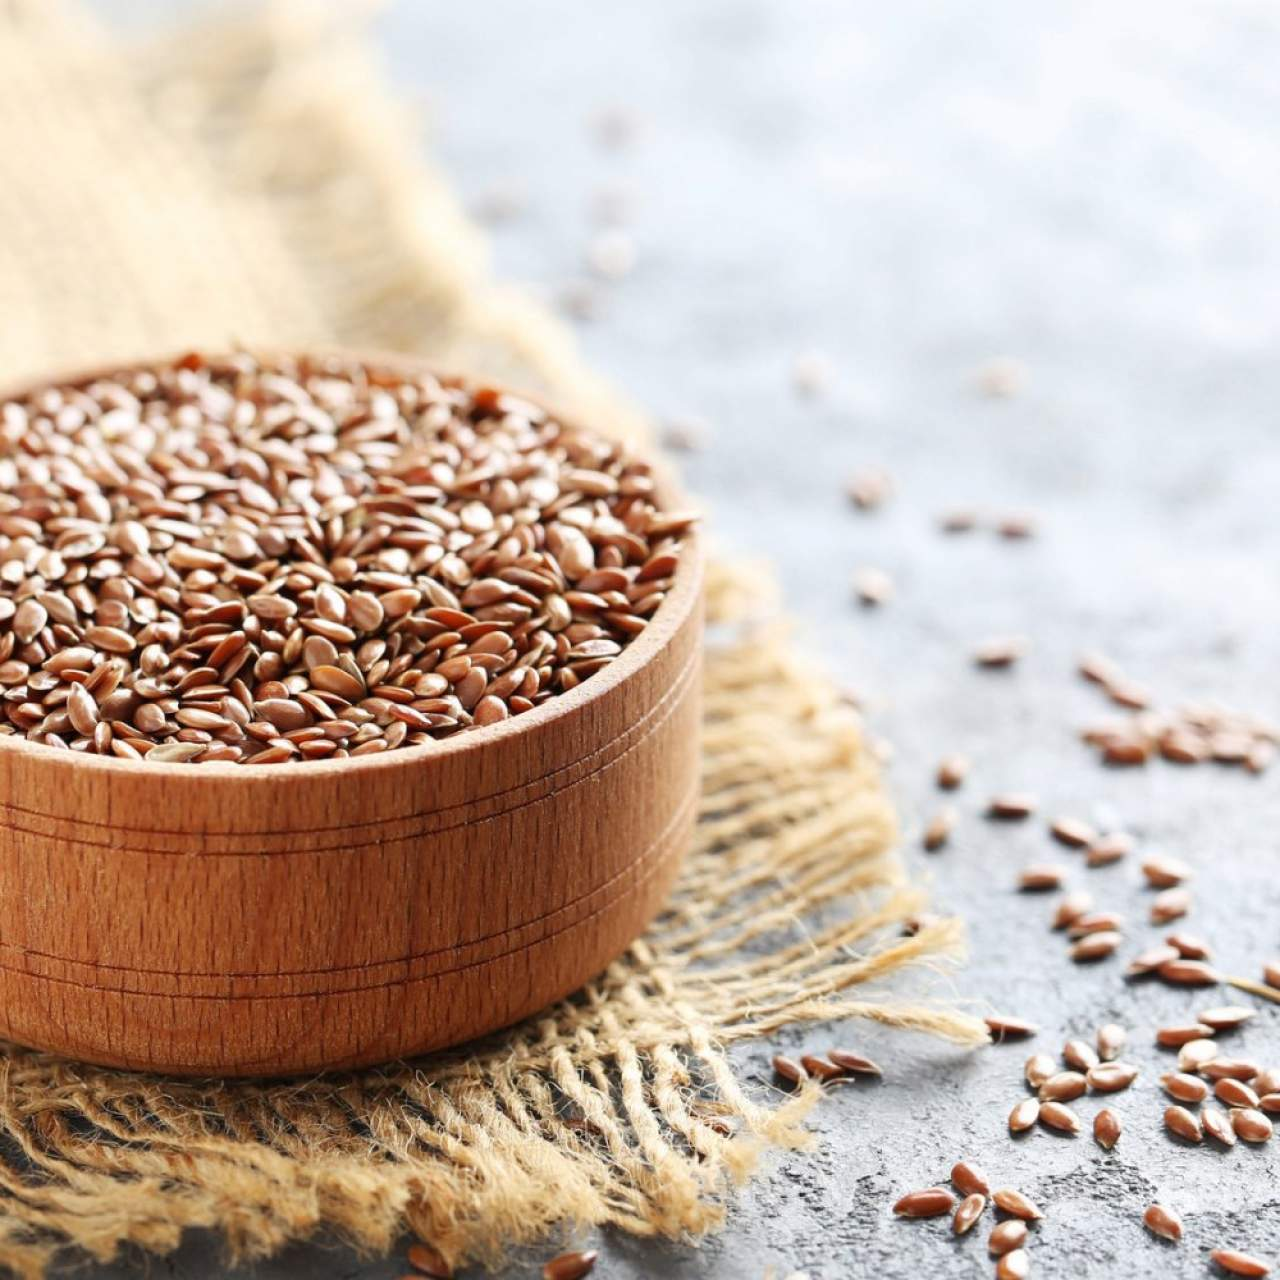 Flax seed Protein Market | Flax seeds Market Report | Industry Analysis, Size and Share with Forecast by 2024